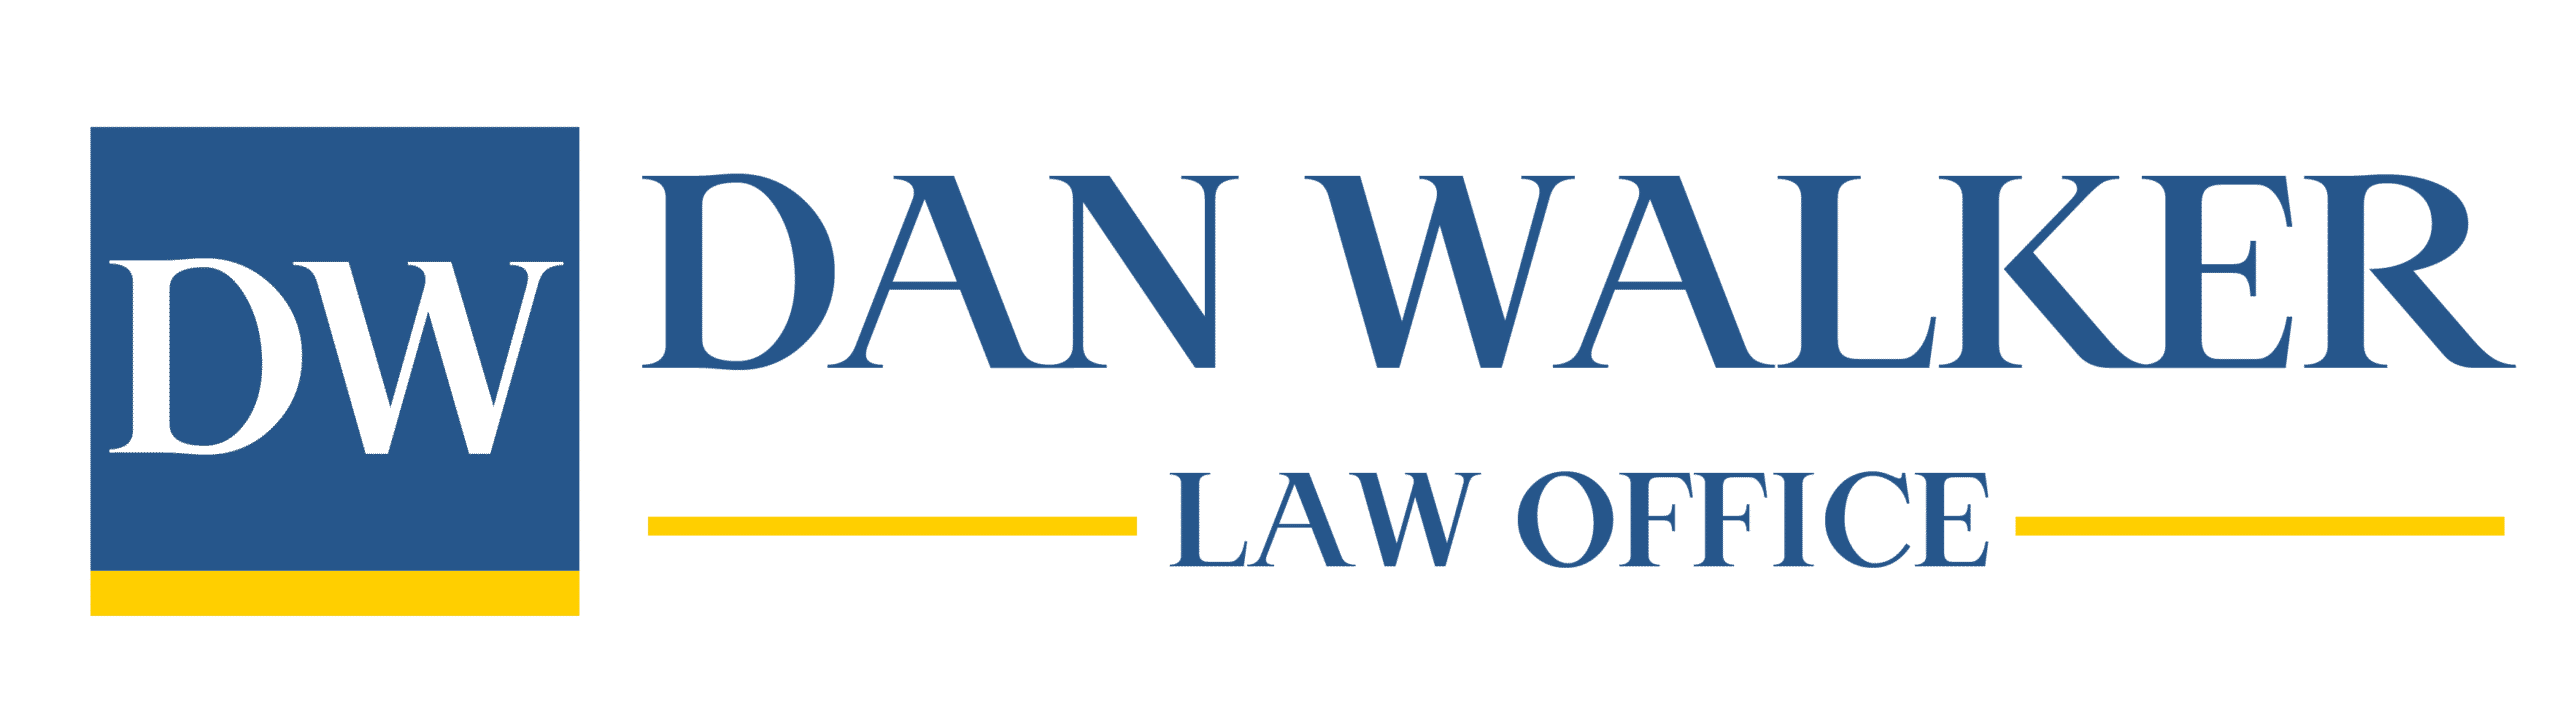 Dan Walker Law Office